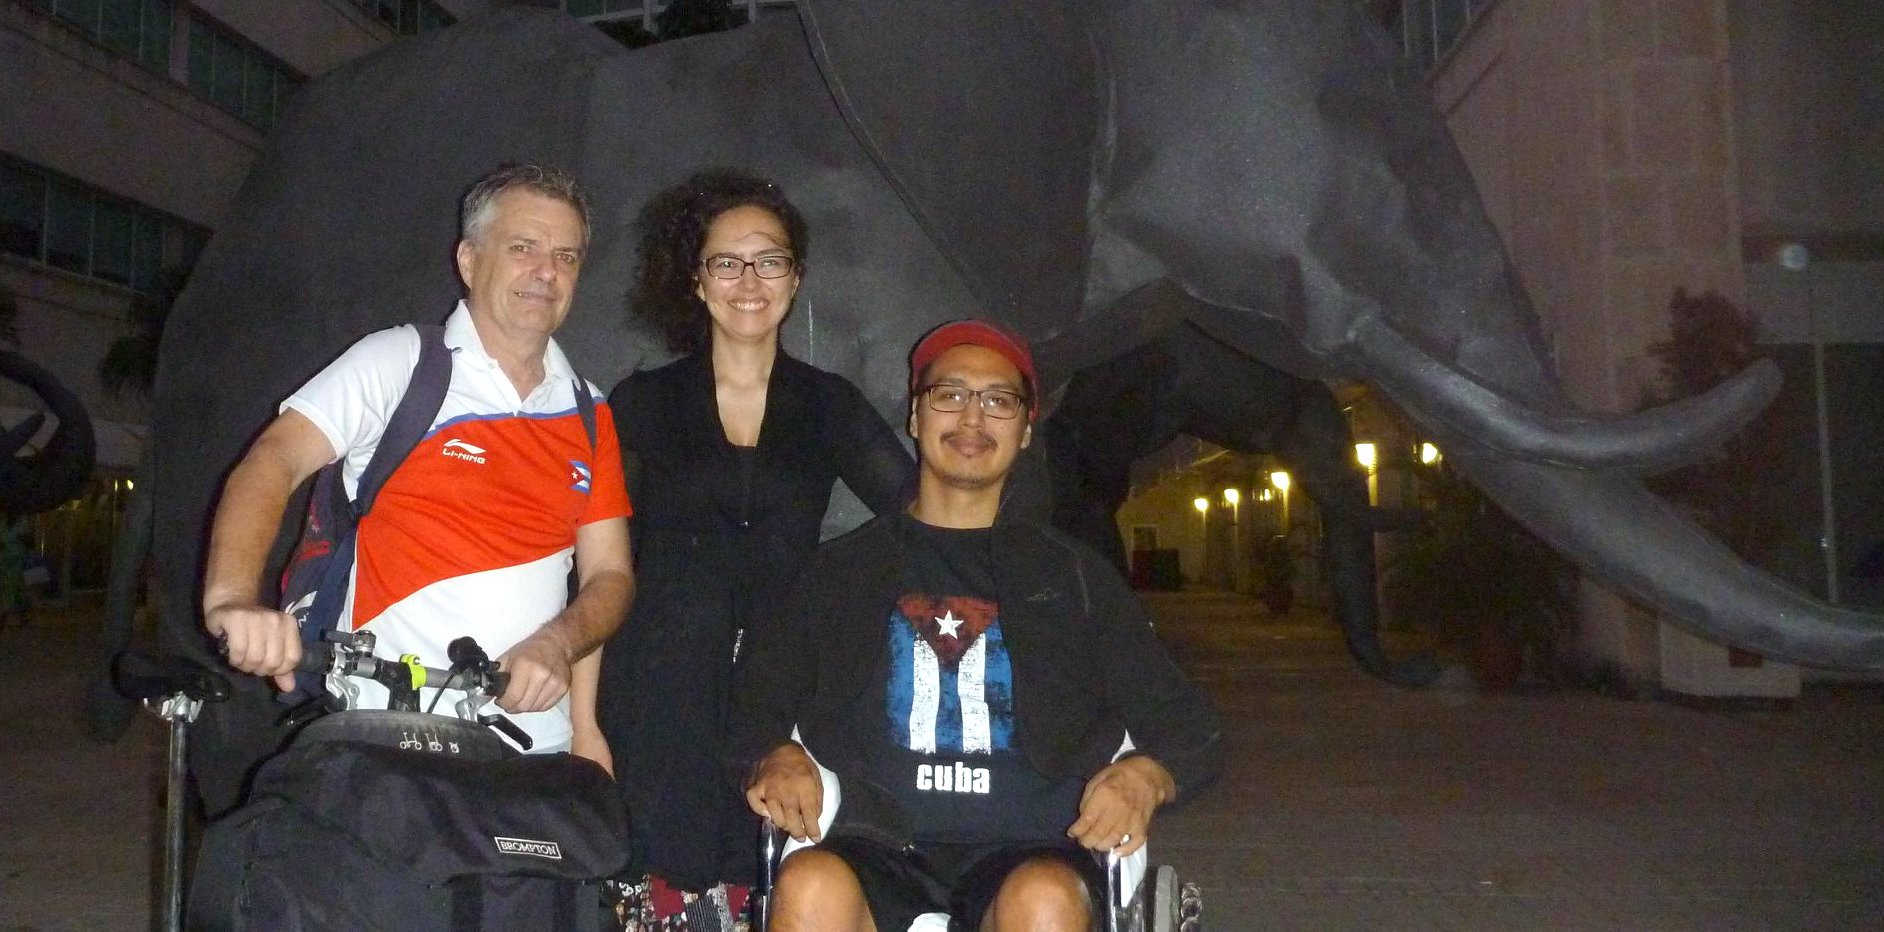 In Havana, together, Dan Boychuk, Tuutalik Boychuk and Napu Boychuk, who has been in Cuba since late 2015 when he broken his back in a swimming mishap in Varadero. (PHOTO COURTESY OF T. BOYCHUK)